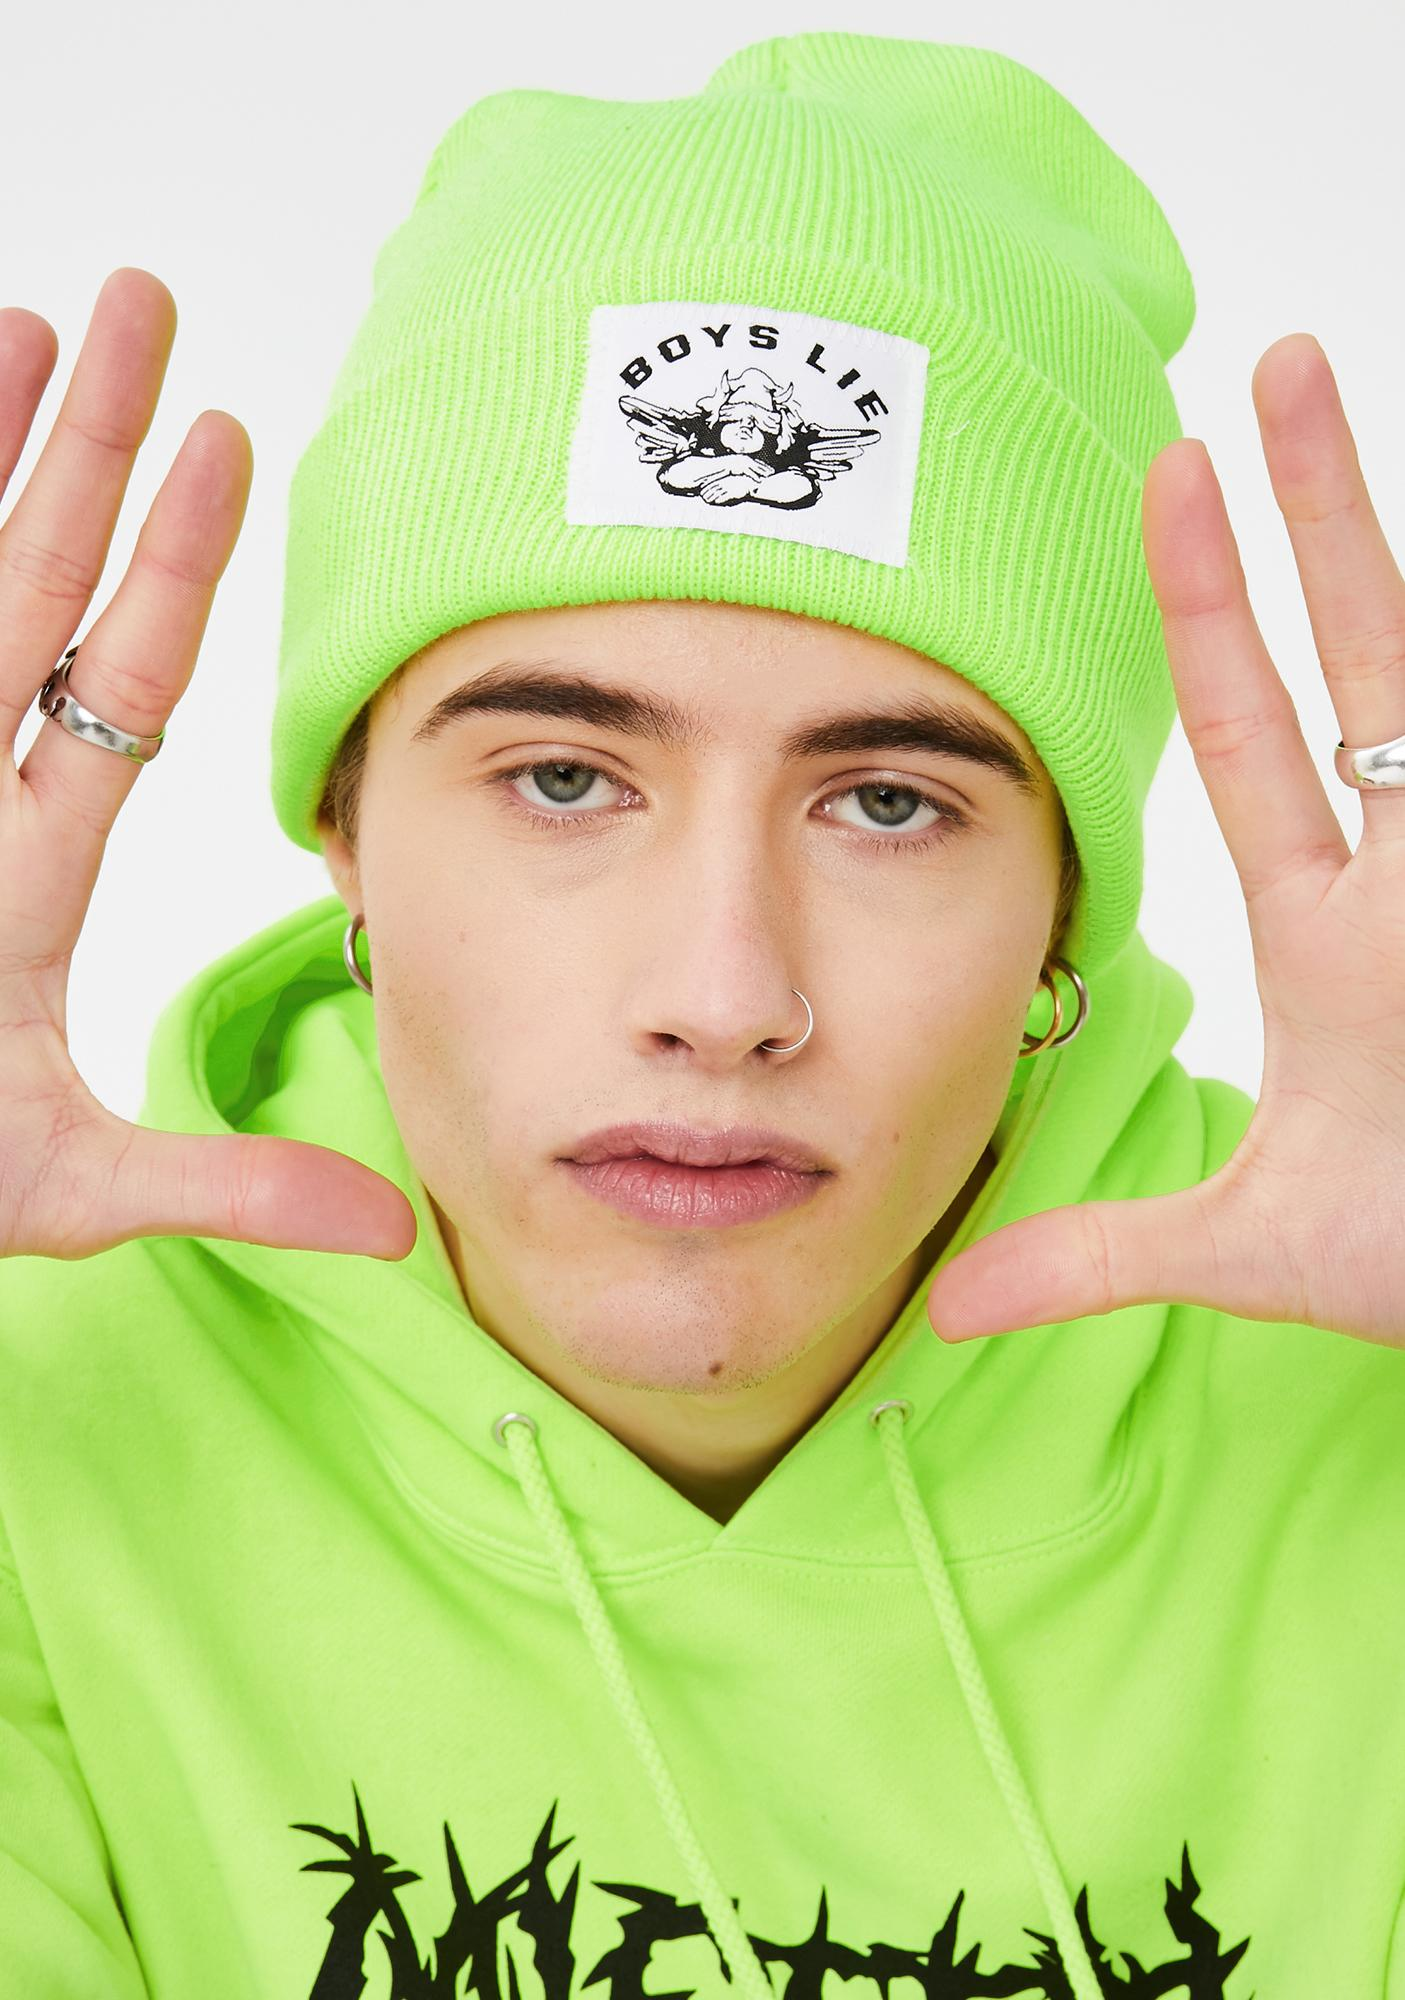 Boys Lie Neon Green Boys Lie Beanie